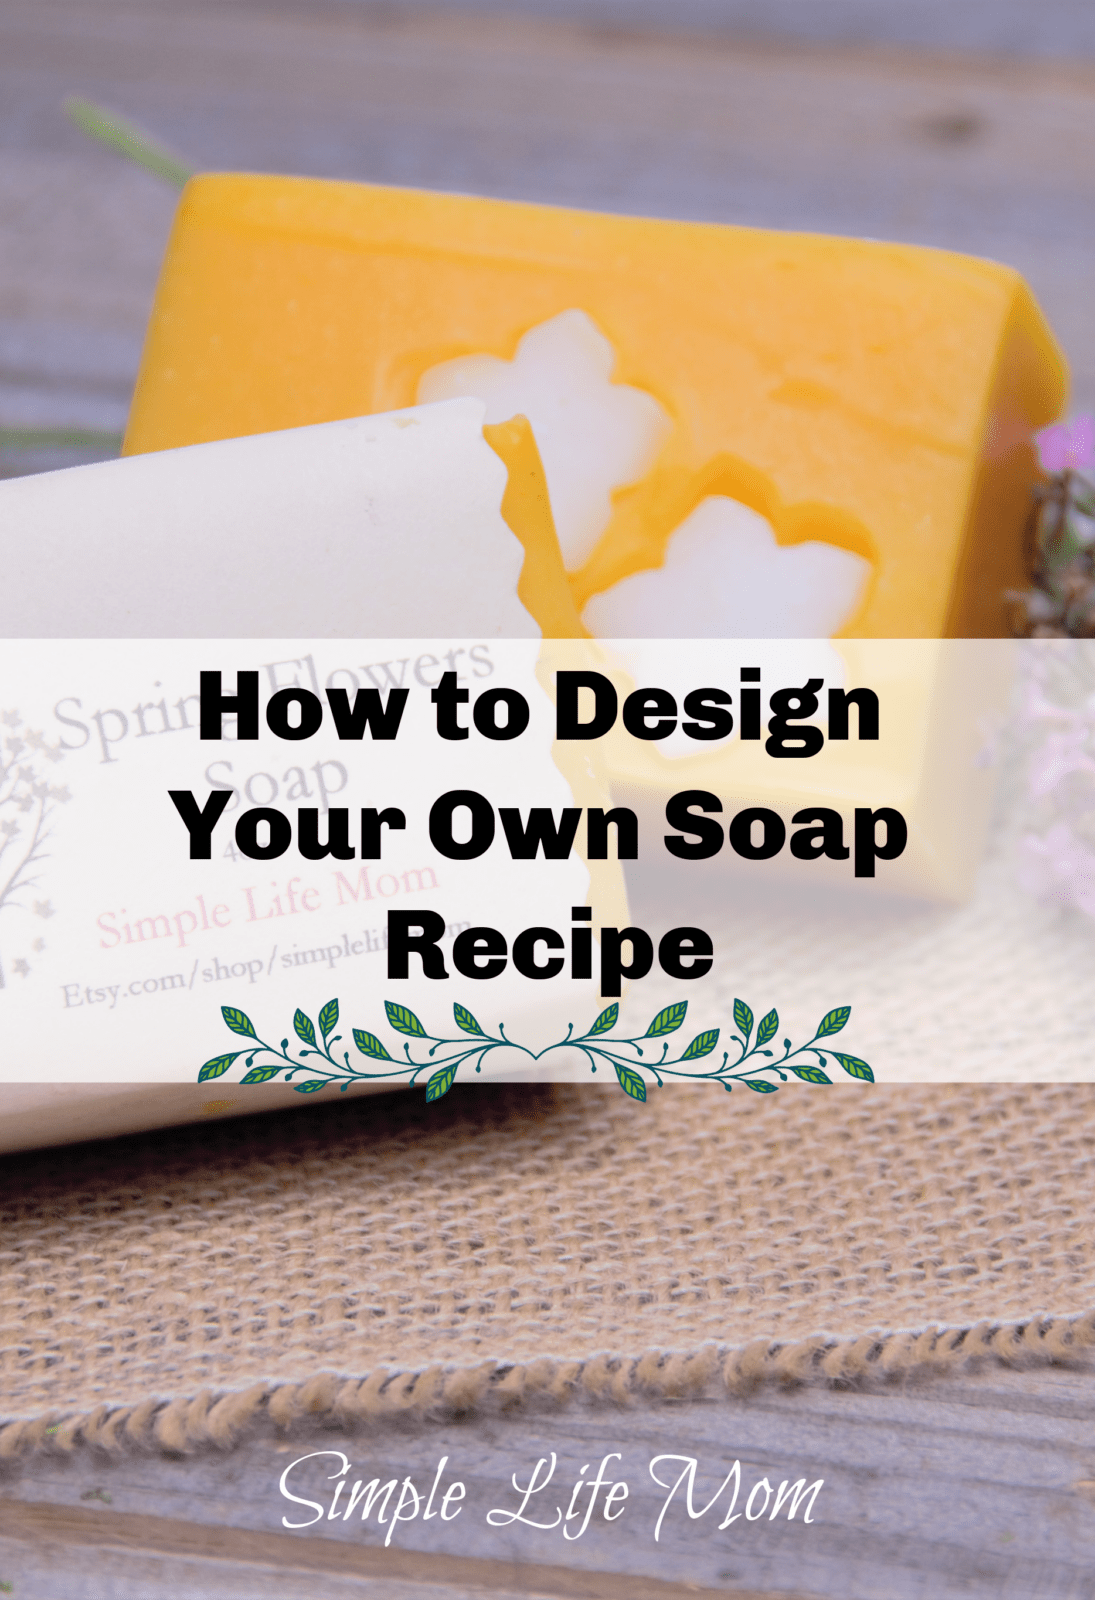 How to Design Your Own Soap Recipe